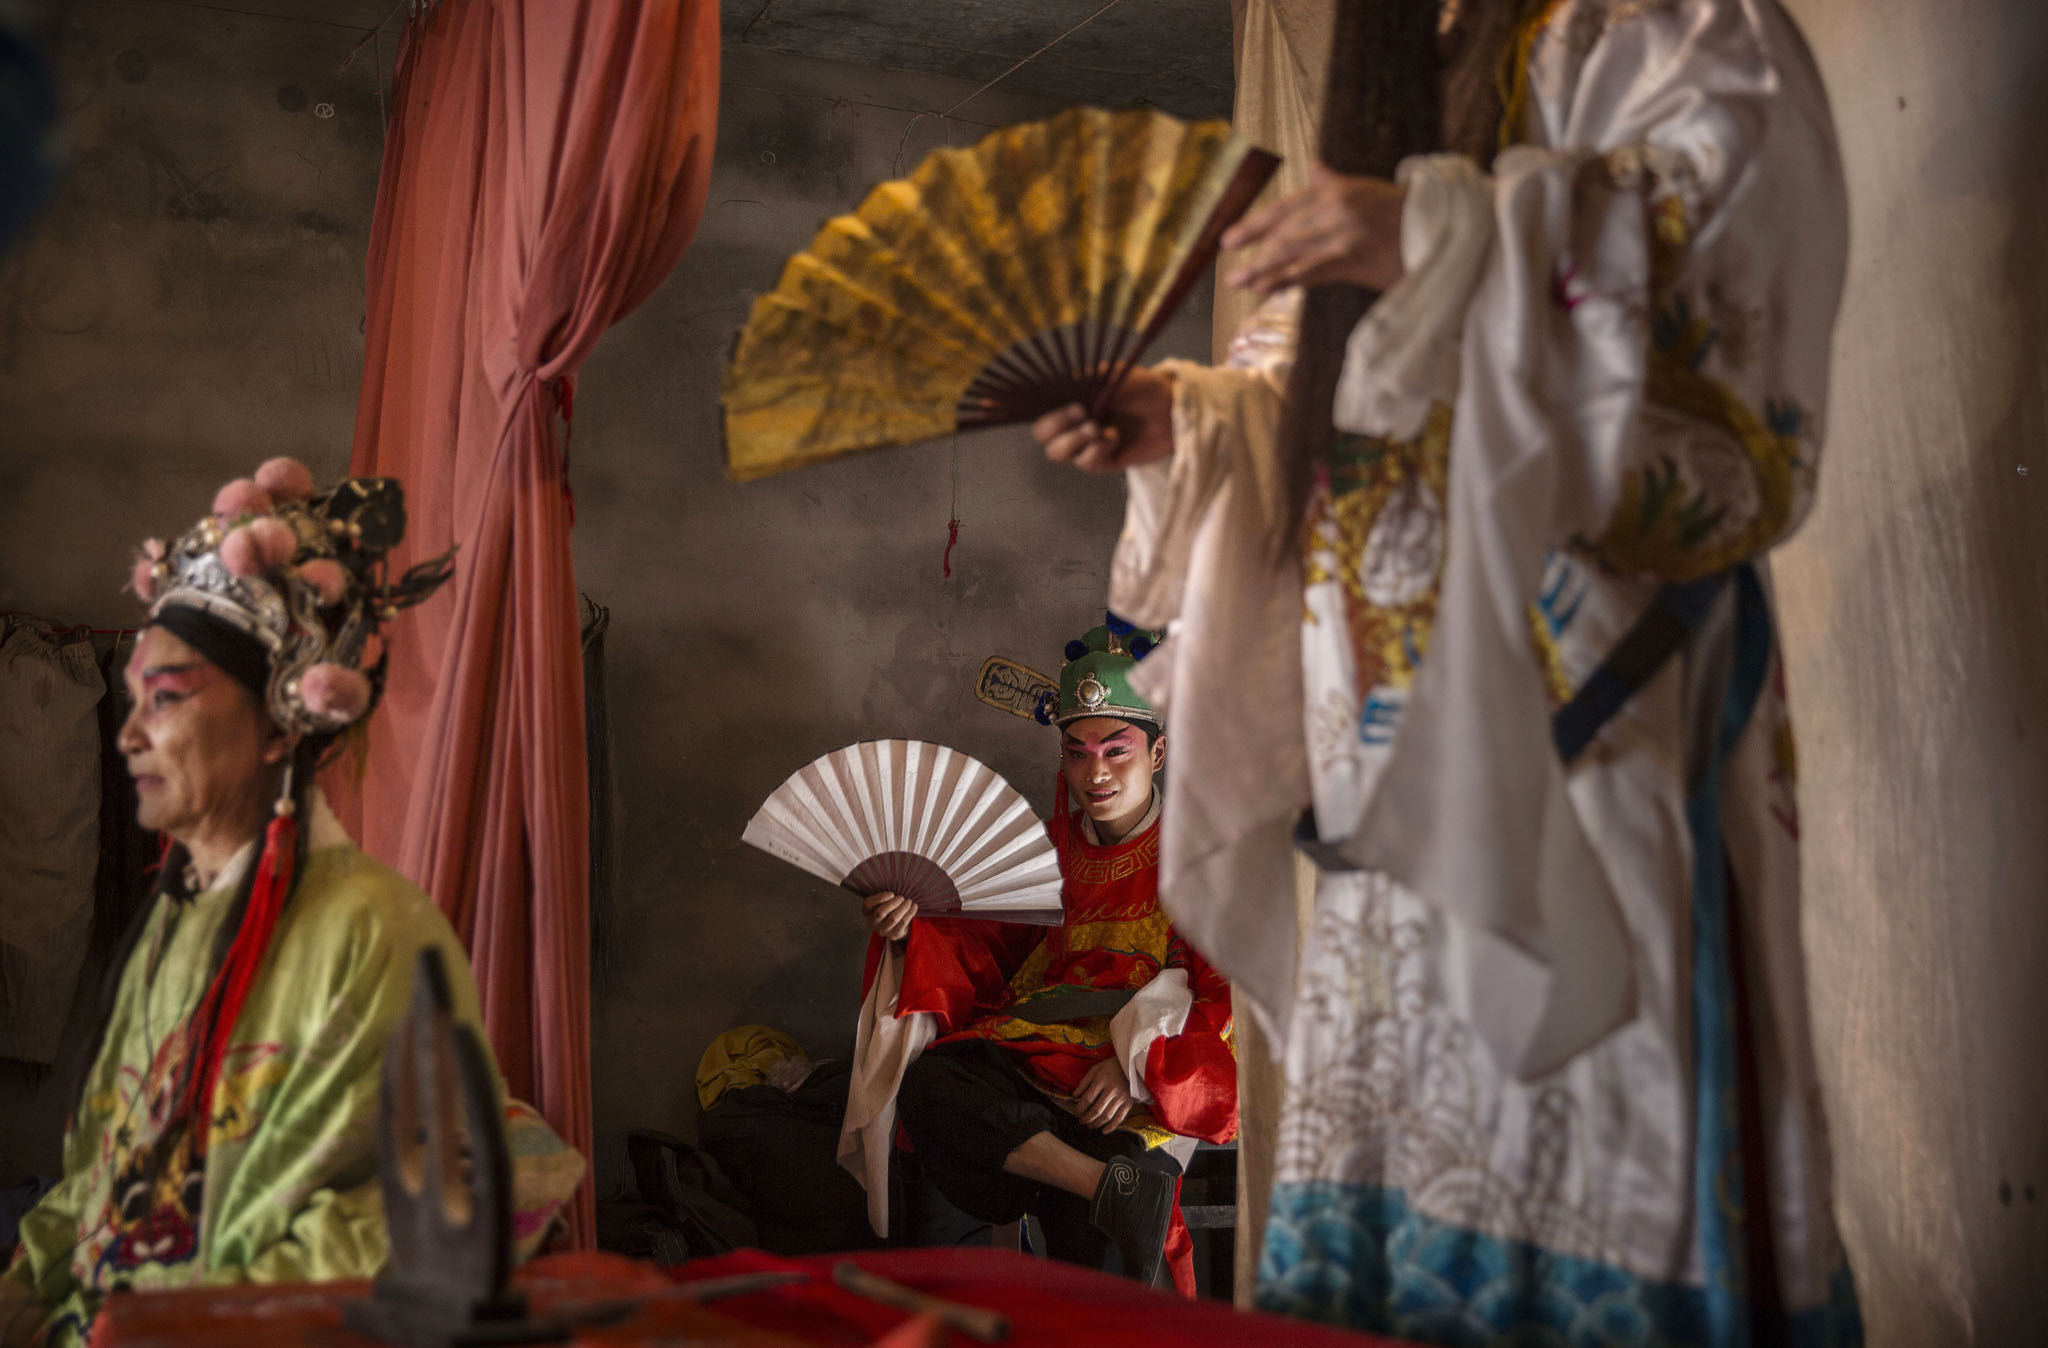 Keeping The Tradition Of Opera Alive In Rural China...CANGSHAN, SICHUAN - MAY 02:  Sichuan Opera actors from the Jinyuan Opera Company perform for villagers at the Dongyue Temple on May 2, 2016 in Cangshan, Sichuan province, China. Sichuan opera is a vibrant, centuries-old tradition that showcases the joys and challenges of daily life in rural China with tales of love, tradition, and family honor. As the traditional audience grows older, the opera as a form of art and recreation is struggling to endure as newer spectators within younger generations are leaving the countryside for China's cities to seek employment.  The tradition suffered a setback 50 years ago during the Cultural Revolution, the period of persecution and upheaval set into motion in May 1966 by Communist Party Chairman Mao Zedong to reassert his ideological authority. The operas were banned and most of the troupes were disbanded, but were revived in the late 1970s. (Photo by Kevin Frayer/Getty Images)